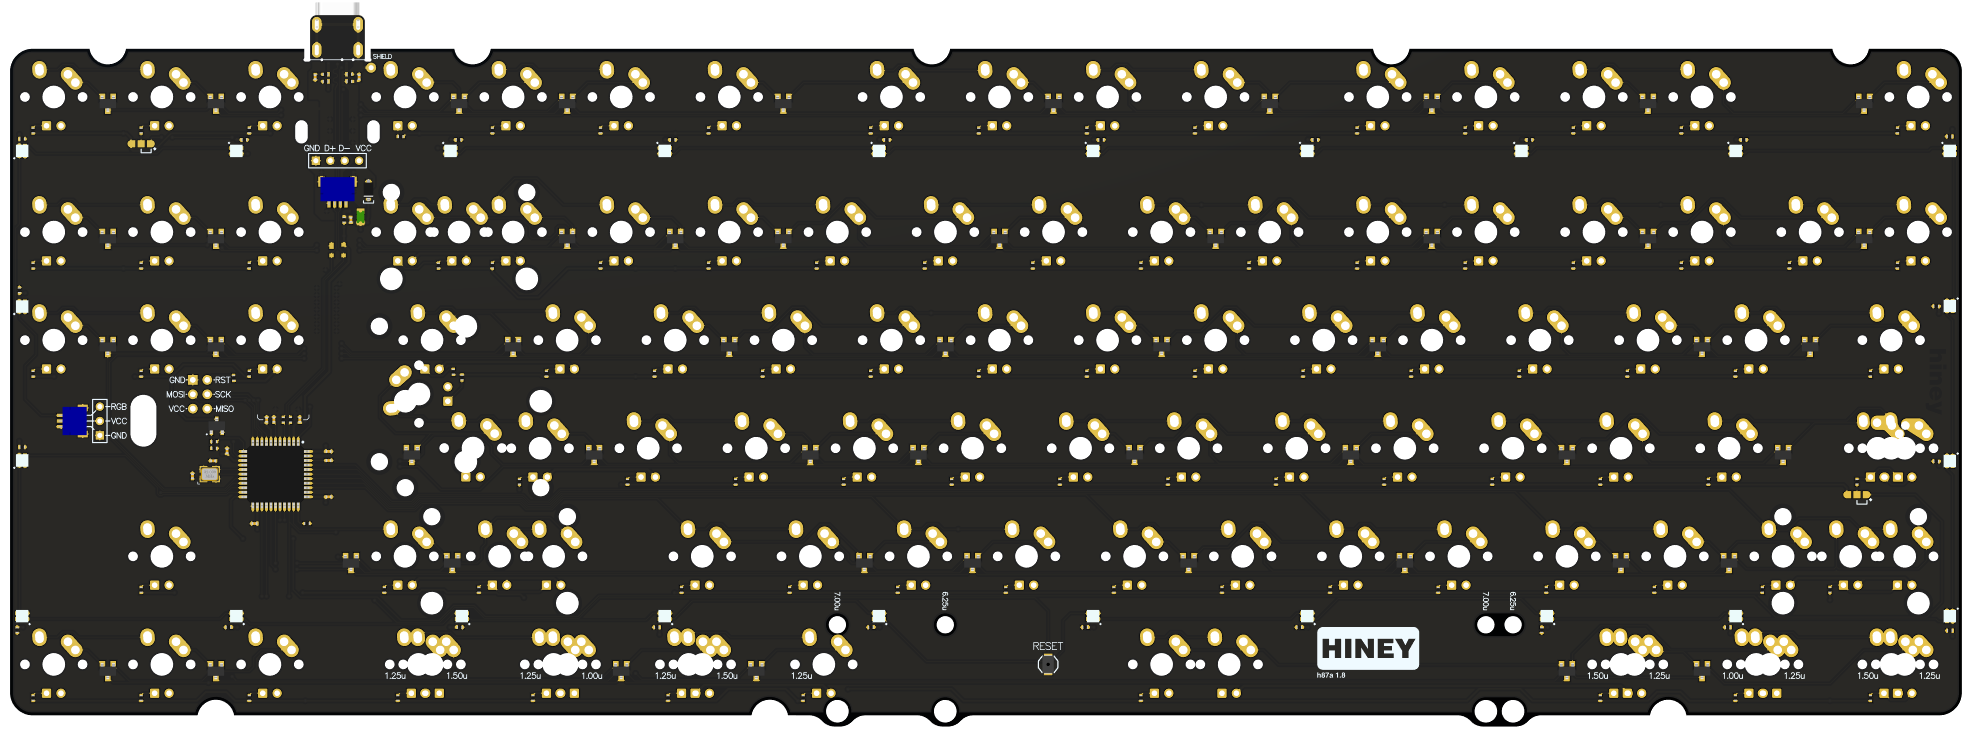 [GB] Hiney h87a 1.8 PCB